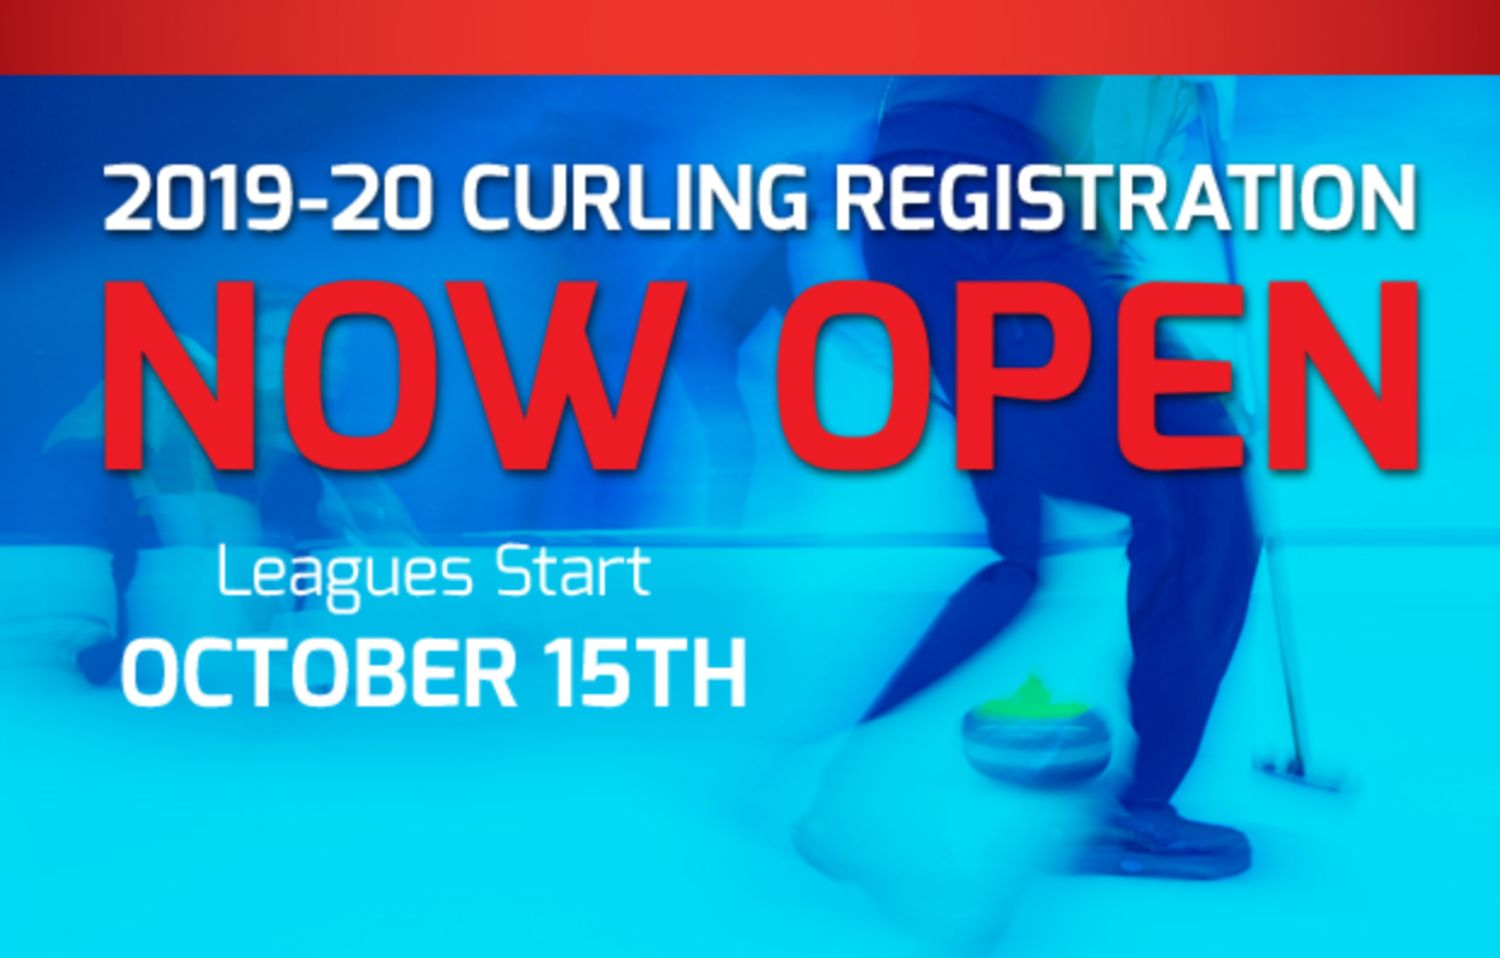 CurlingReg-2019-20-V1.jpg